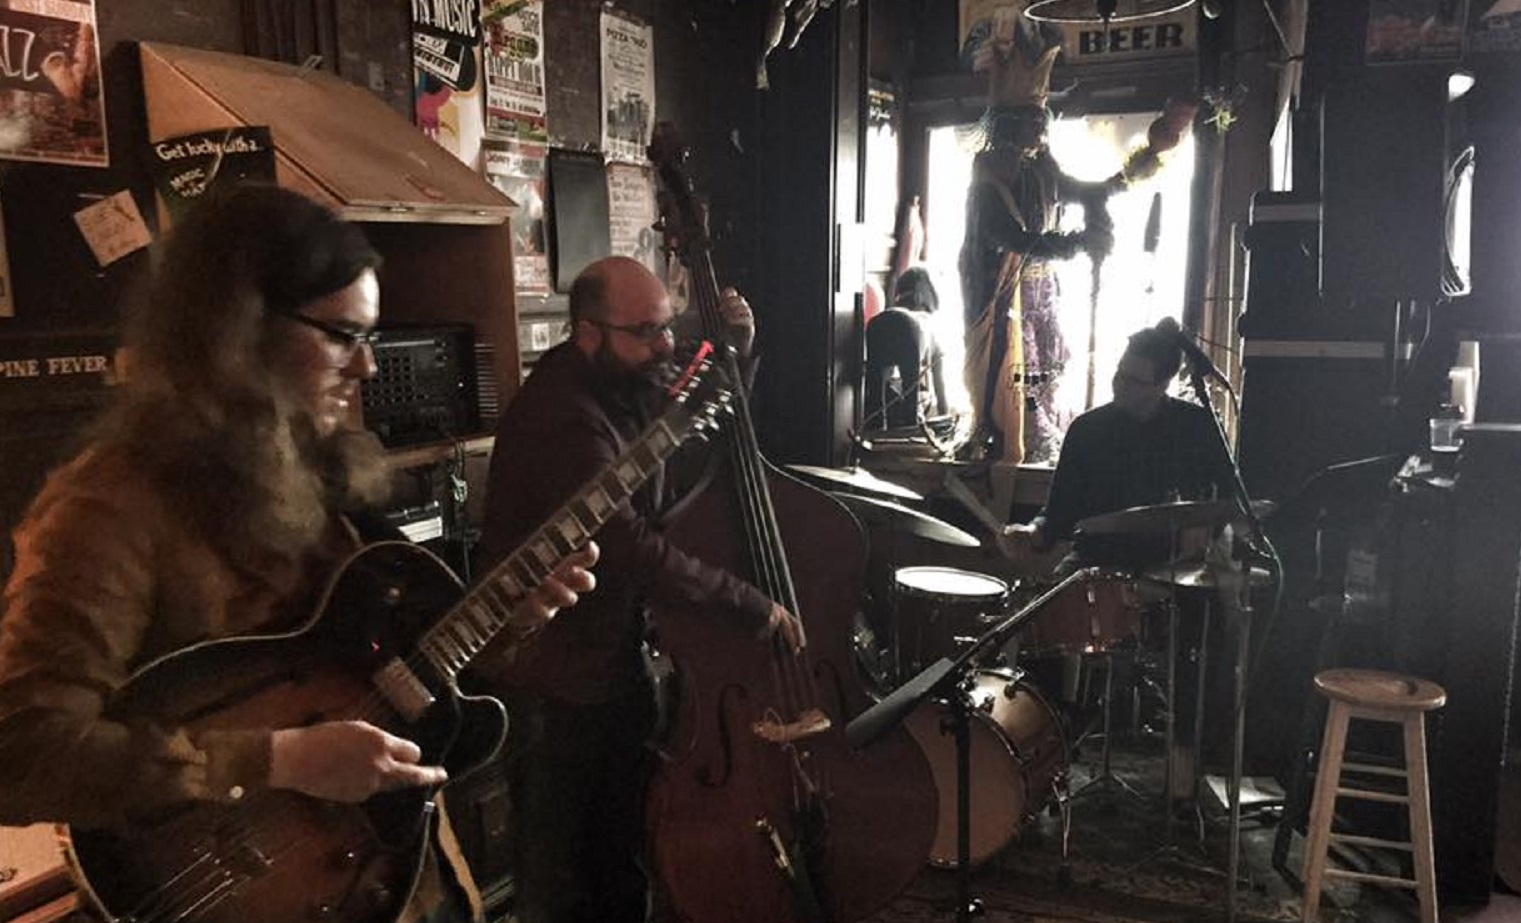 The Jared Tinkham Trio, Nietzsche's Jazz Fest, May 14, 2017. Photo by Jeff Miers.